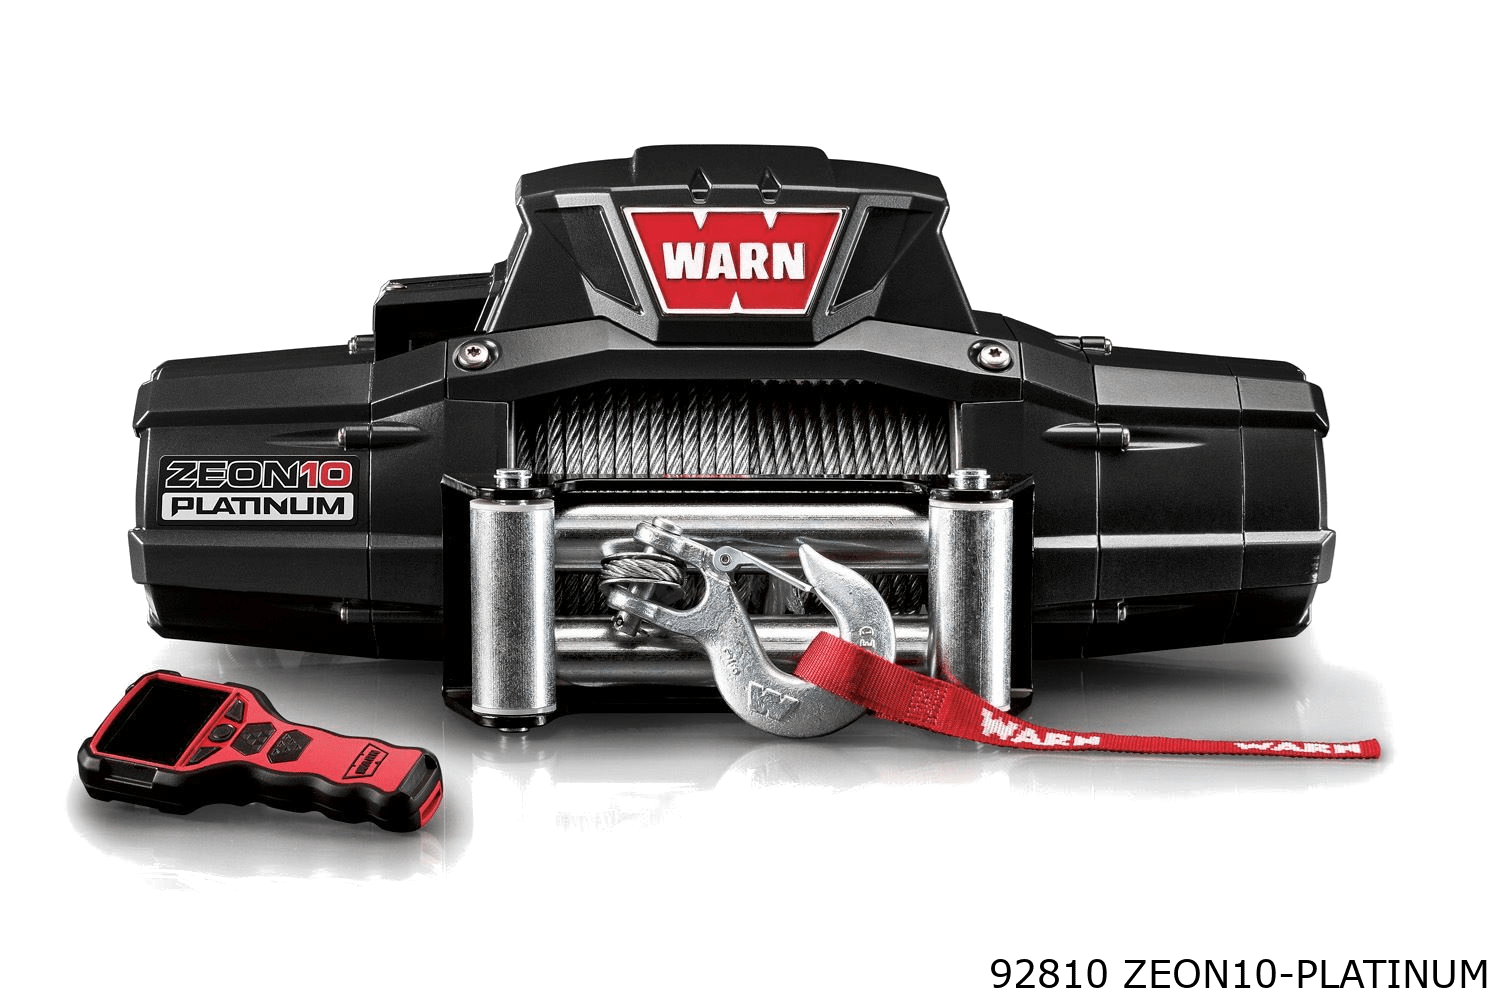 warn truck & SUV ultimate winch 92810 zeon10 platinum